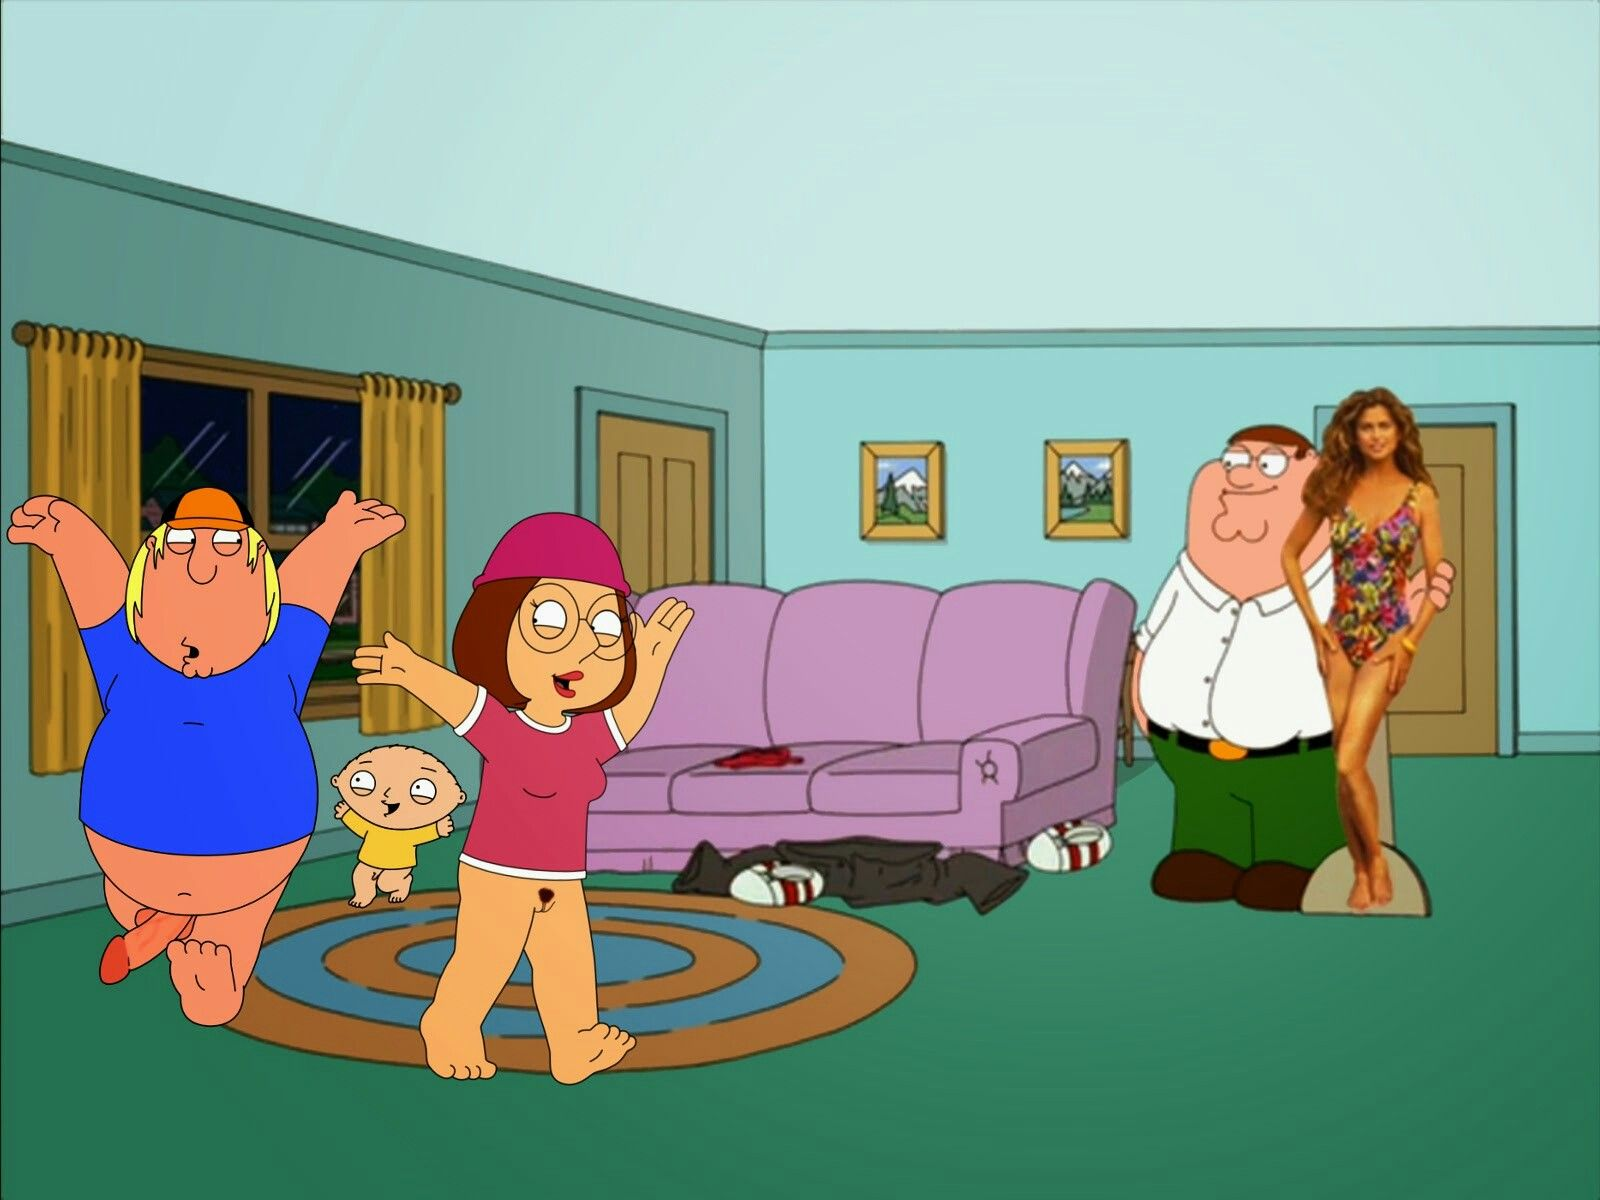 nude-female-family-guy-nude-wallpapers-extreme-bikini-thumbnail